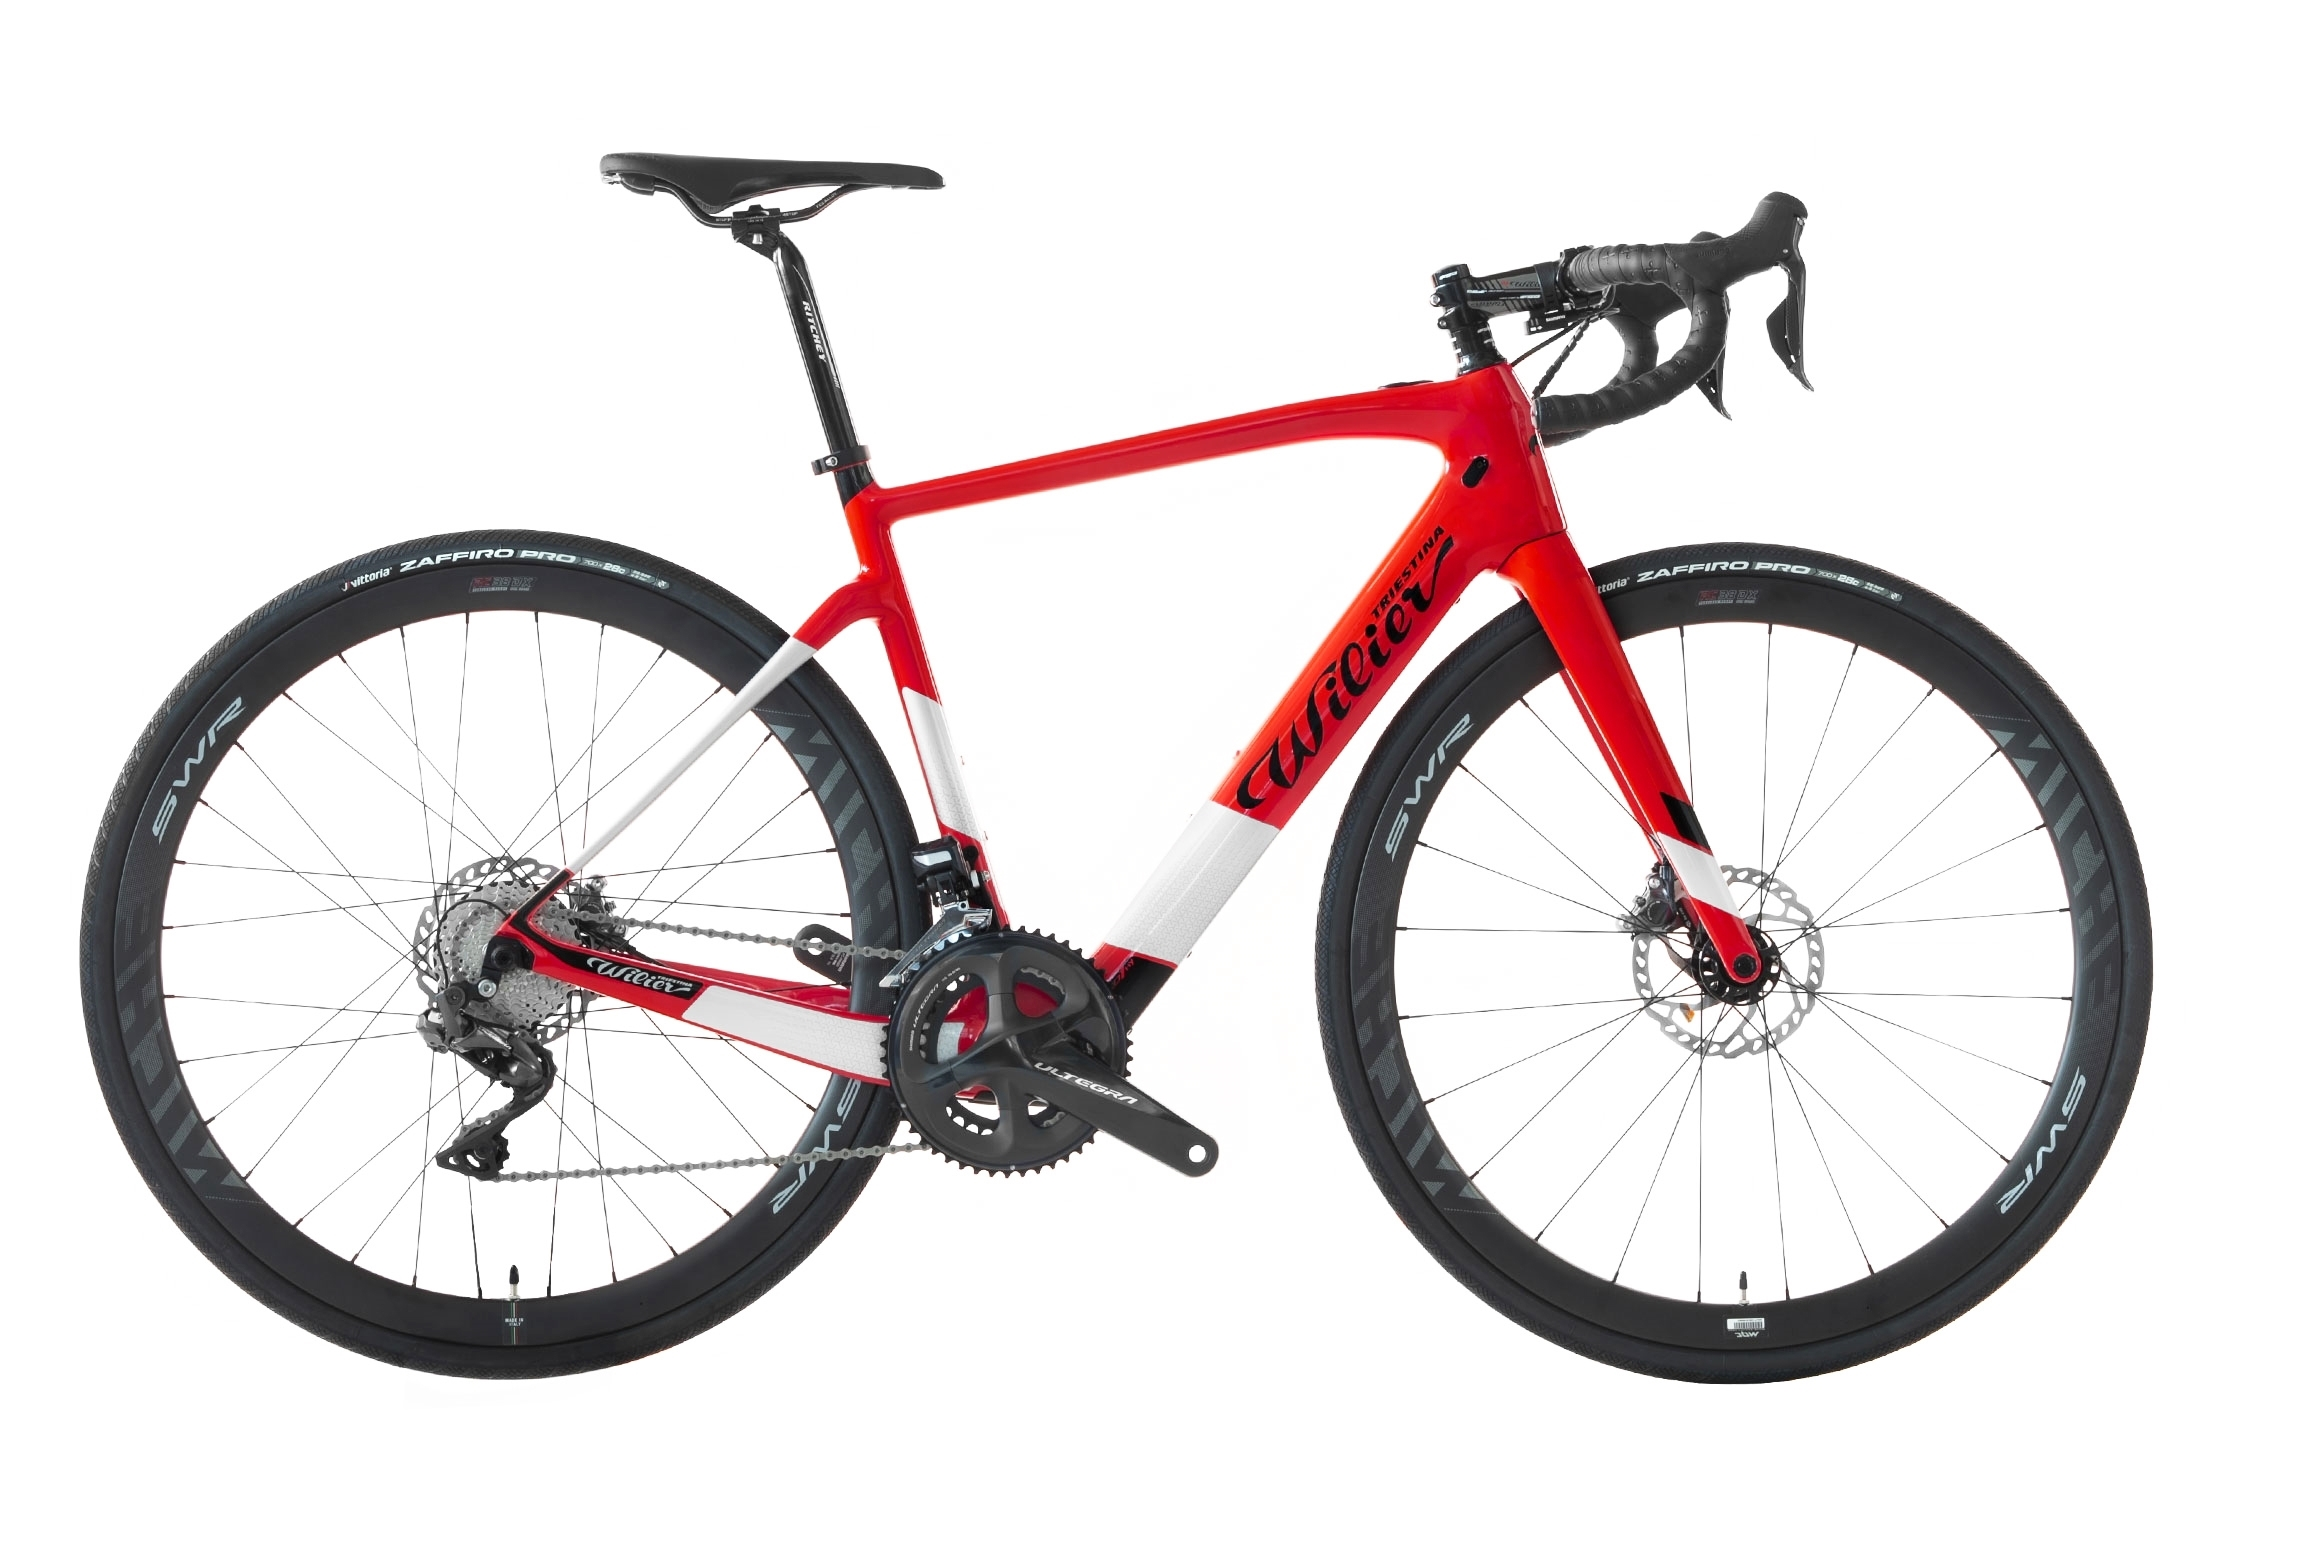 kolo CENTO1HY + ULTEGRA R8020+MICHE red glossy  XL